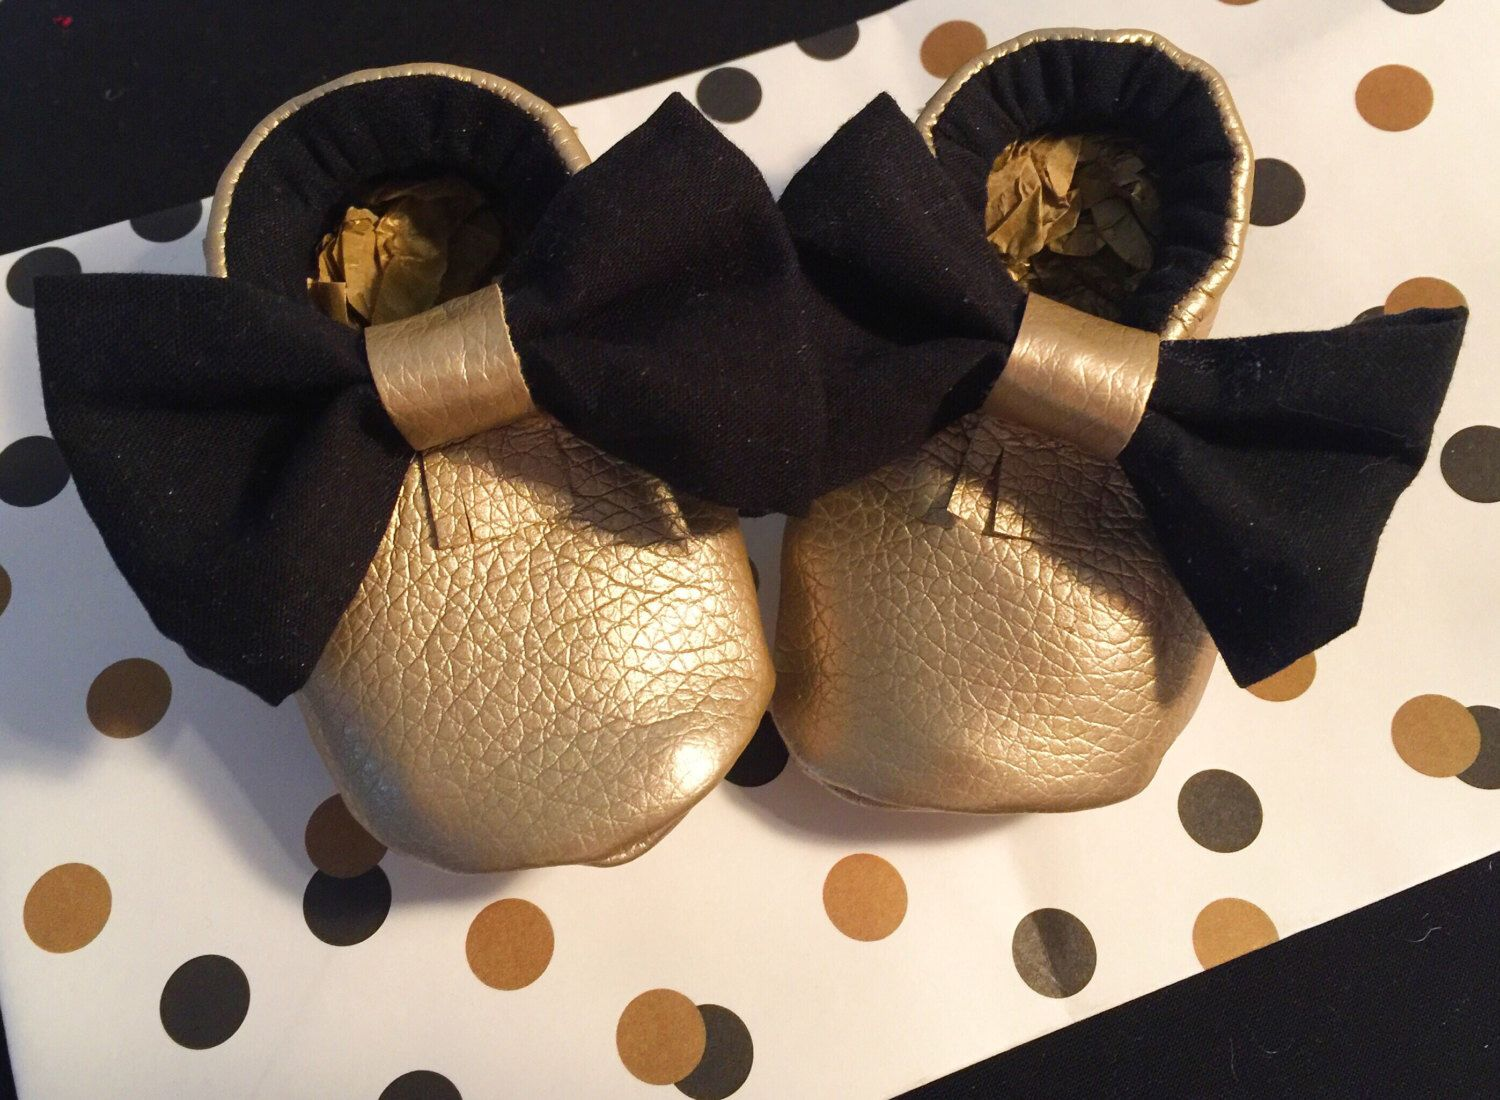 Adorable Gold and Black baby Moccs by MamabirdMoccs on Etsy https://www.etsy.com/listing/264407350/penelope-moccs-gold-bow-moccasins-faux